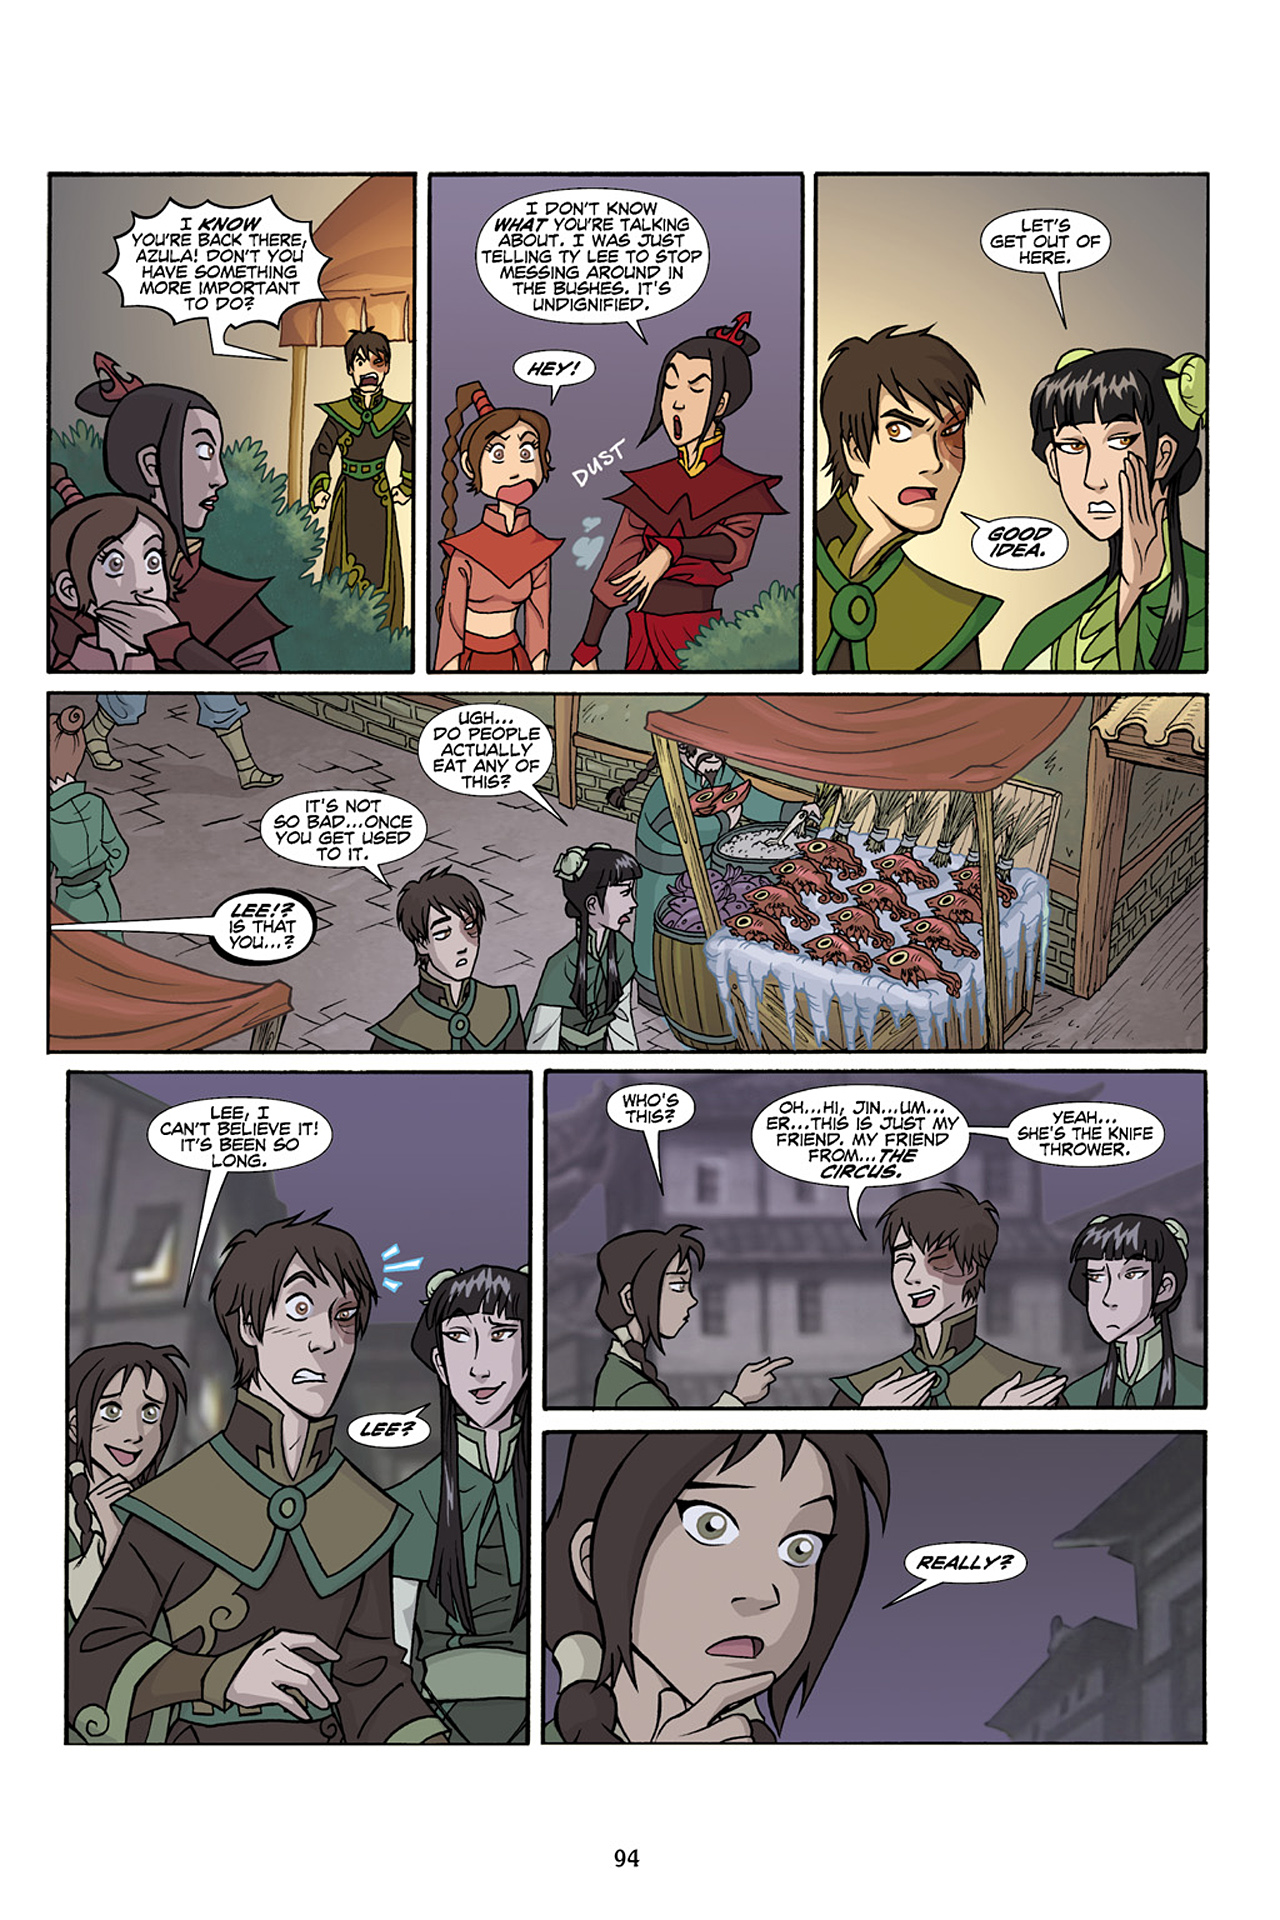 Nickelodeon Avatar: The Last Airbender - The Lost Adventures chap full pic 95